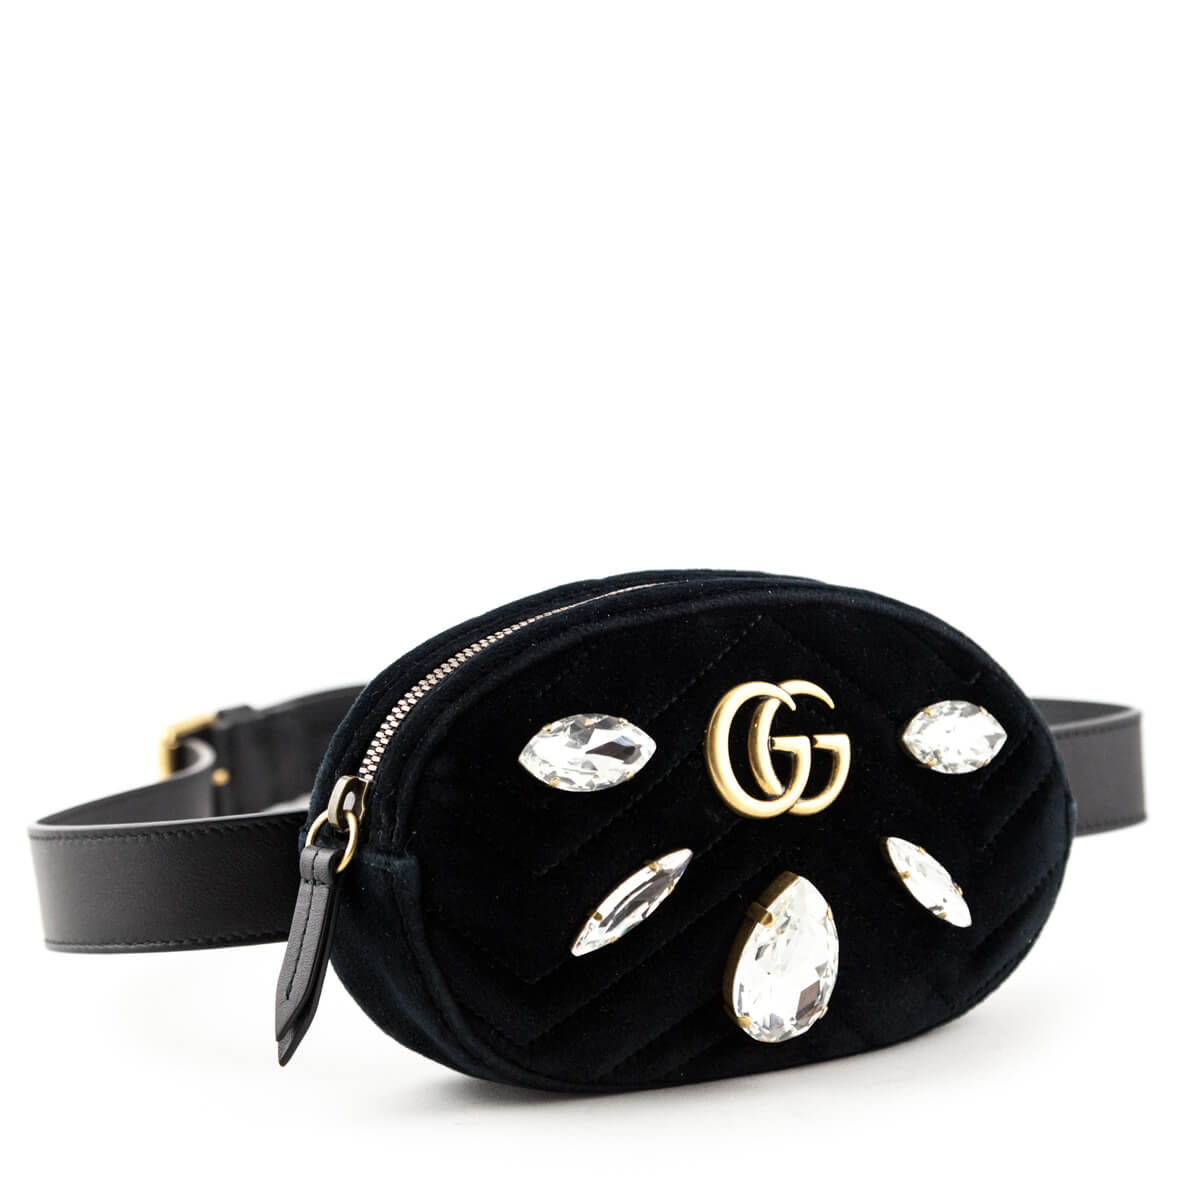 747596a19385 ... Gucci Black Crystal   Velvet Marmont 2.0 Belt Bag - LOVE that BAG - Preowned  Authentic ...